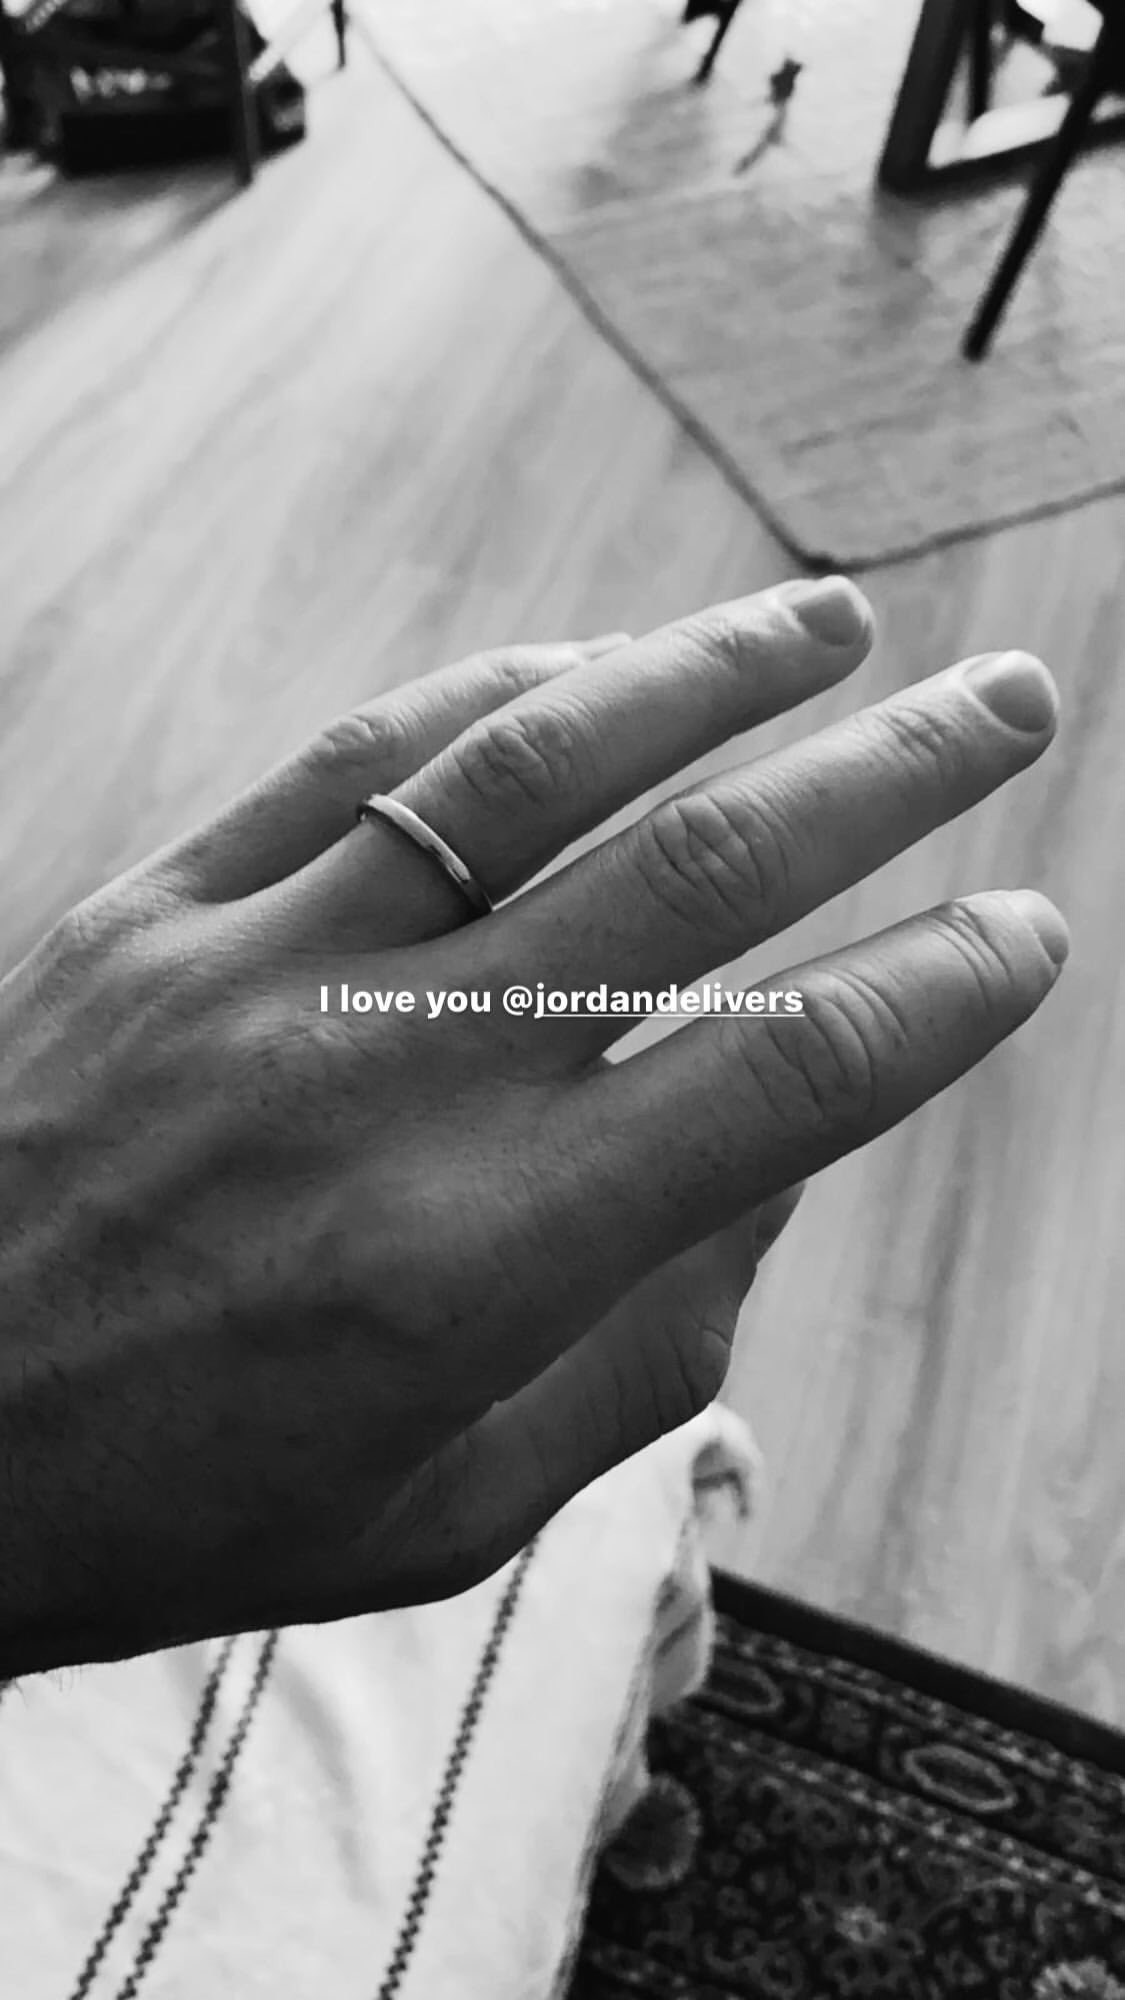 Duncan Laurence shared a glimpse at his engagement ring